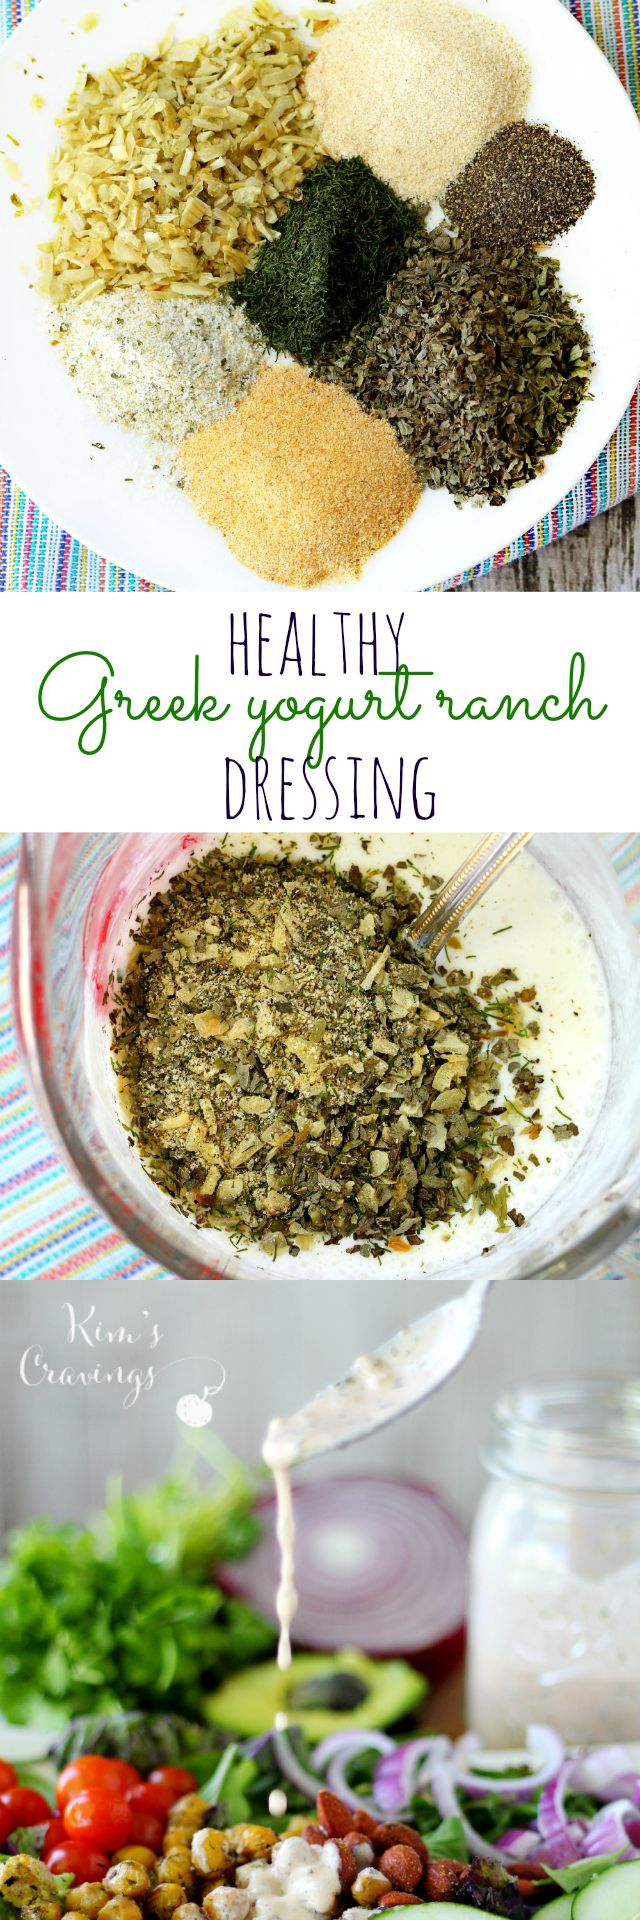 Healthy Greek Yogurt Ranch Dressing- creamy and healthier with that lovely classic ranch flavor we've all grown to love.